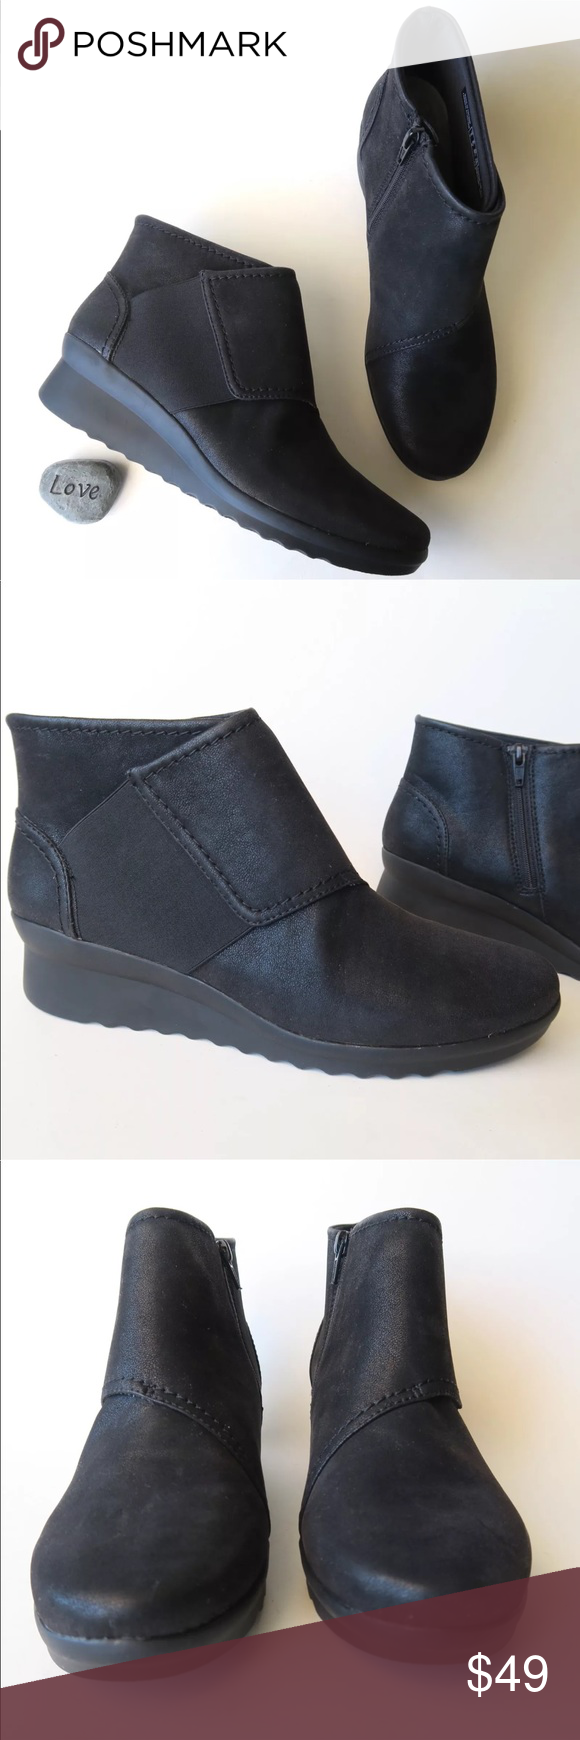 a461952f466f Cloud Steppers by Clarks Womens Black Booties NWOB Cloud Steppers by Clarks  Women s Sz 8.5 M Black Wedge Caddell Rush Booties NWOB New without box.